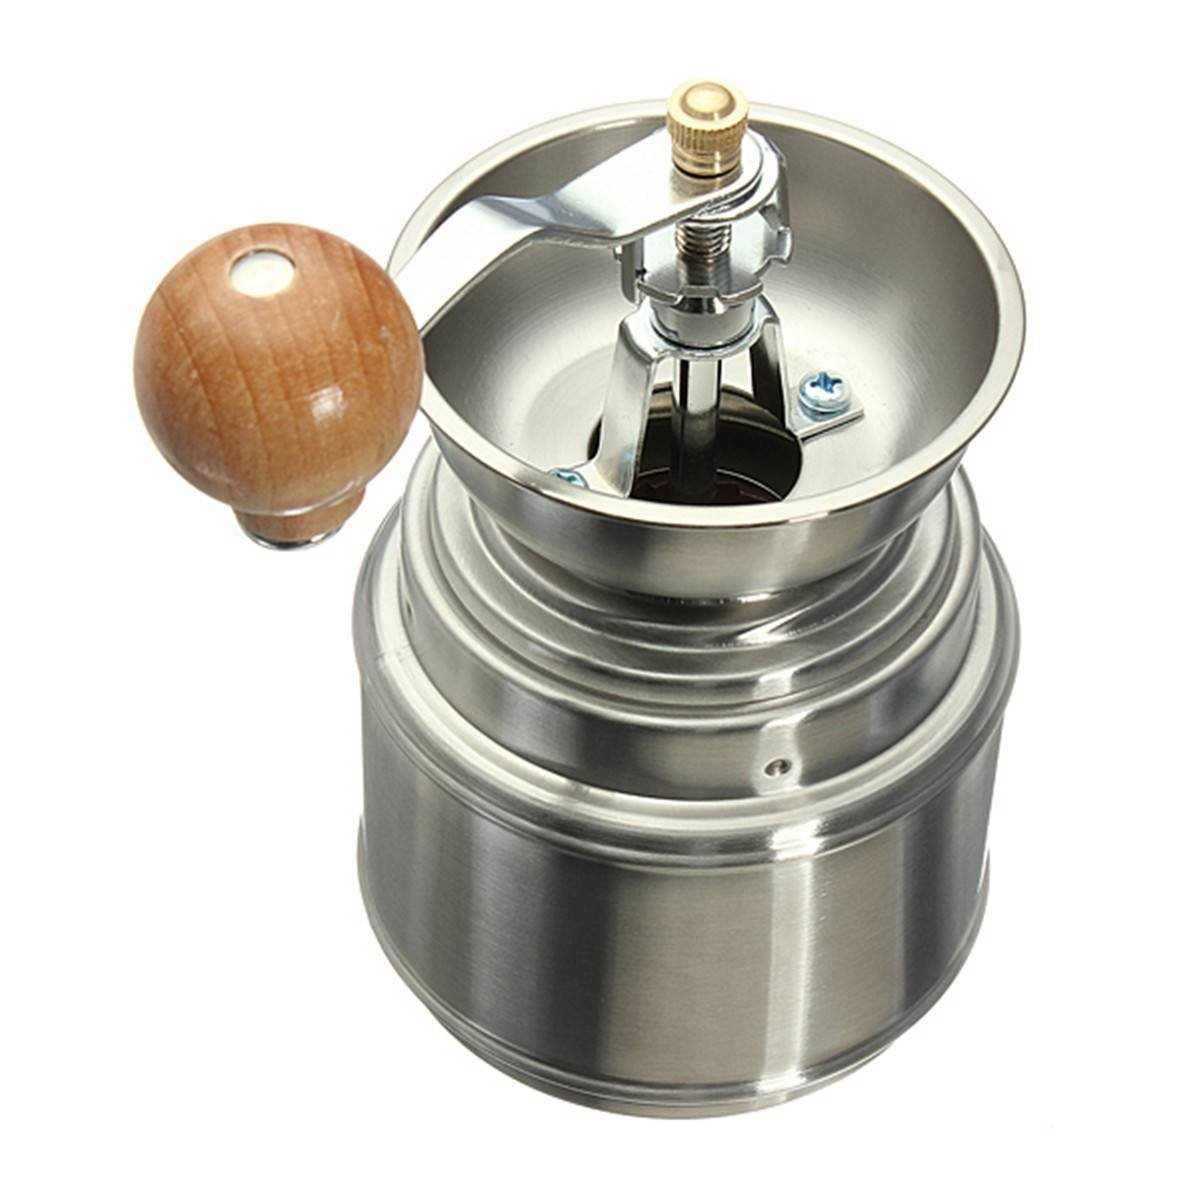 Bestselling Stainless Steel Manual Spice Bean Coffee Grinder Burr Grinder Mill with Ceramic Core